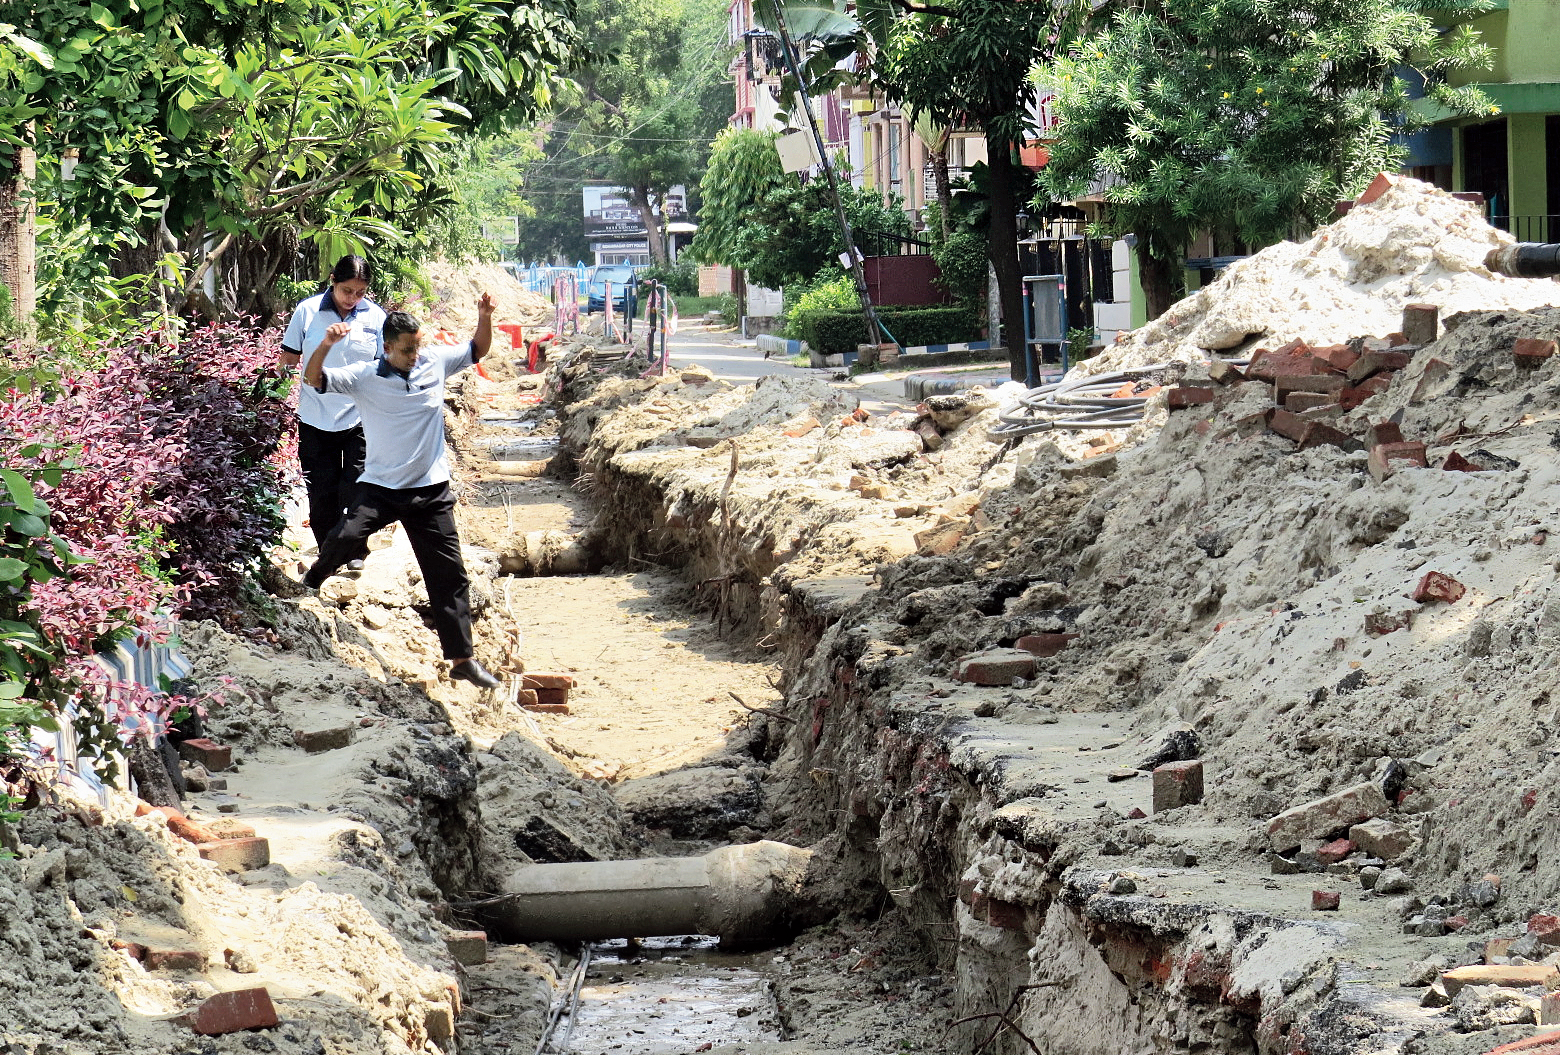 July 4: A worker of a private hospital jumps into a ditch dug up in the service road running parallel to the Broadway in HA Block.